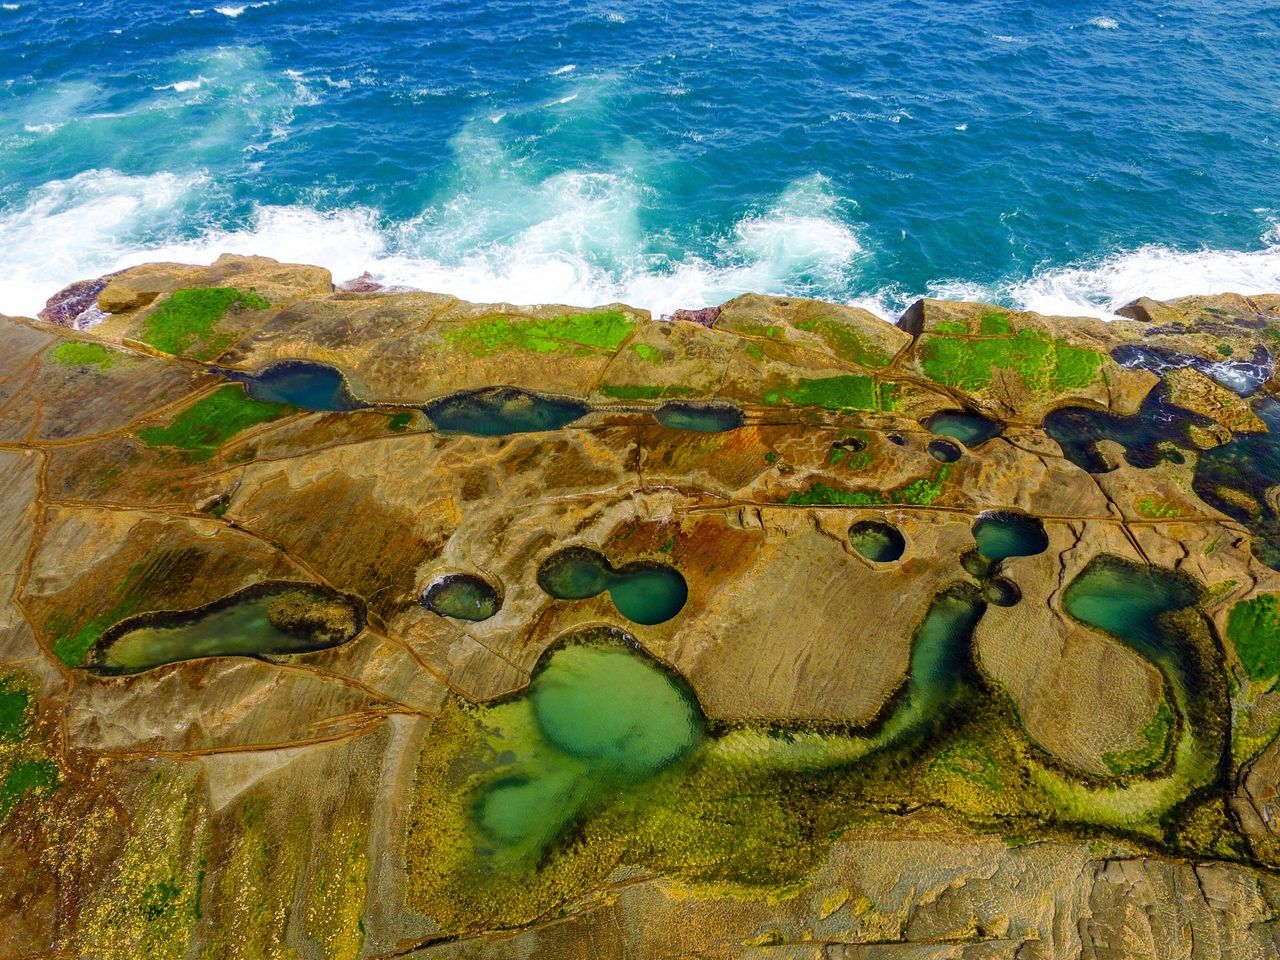 Rock Formation Rocks And Water Outdoor Photography Outdoors From My Point Of View Dronephotography Drone Photography From Above  Droneshot Drone Moments Travel Destinations Birds Eye View Drones Drone  Bestoftheday EyeEmBestPics EyeEm Best Shots - Nature Beauty In Nature Eye4photography  EyeEm Nature Lover EyeEm Gallery EyeEm Best Shots Australian Landscape Australia & Travel Rockpools